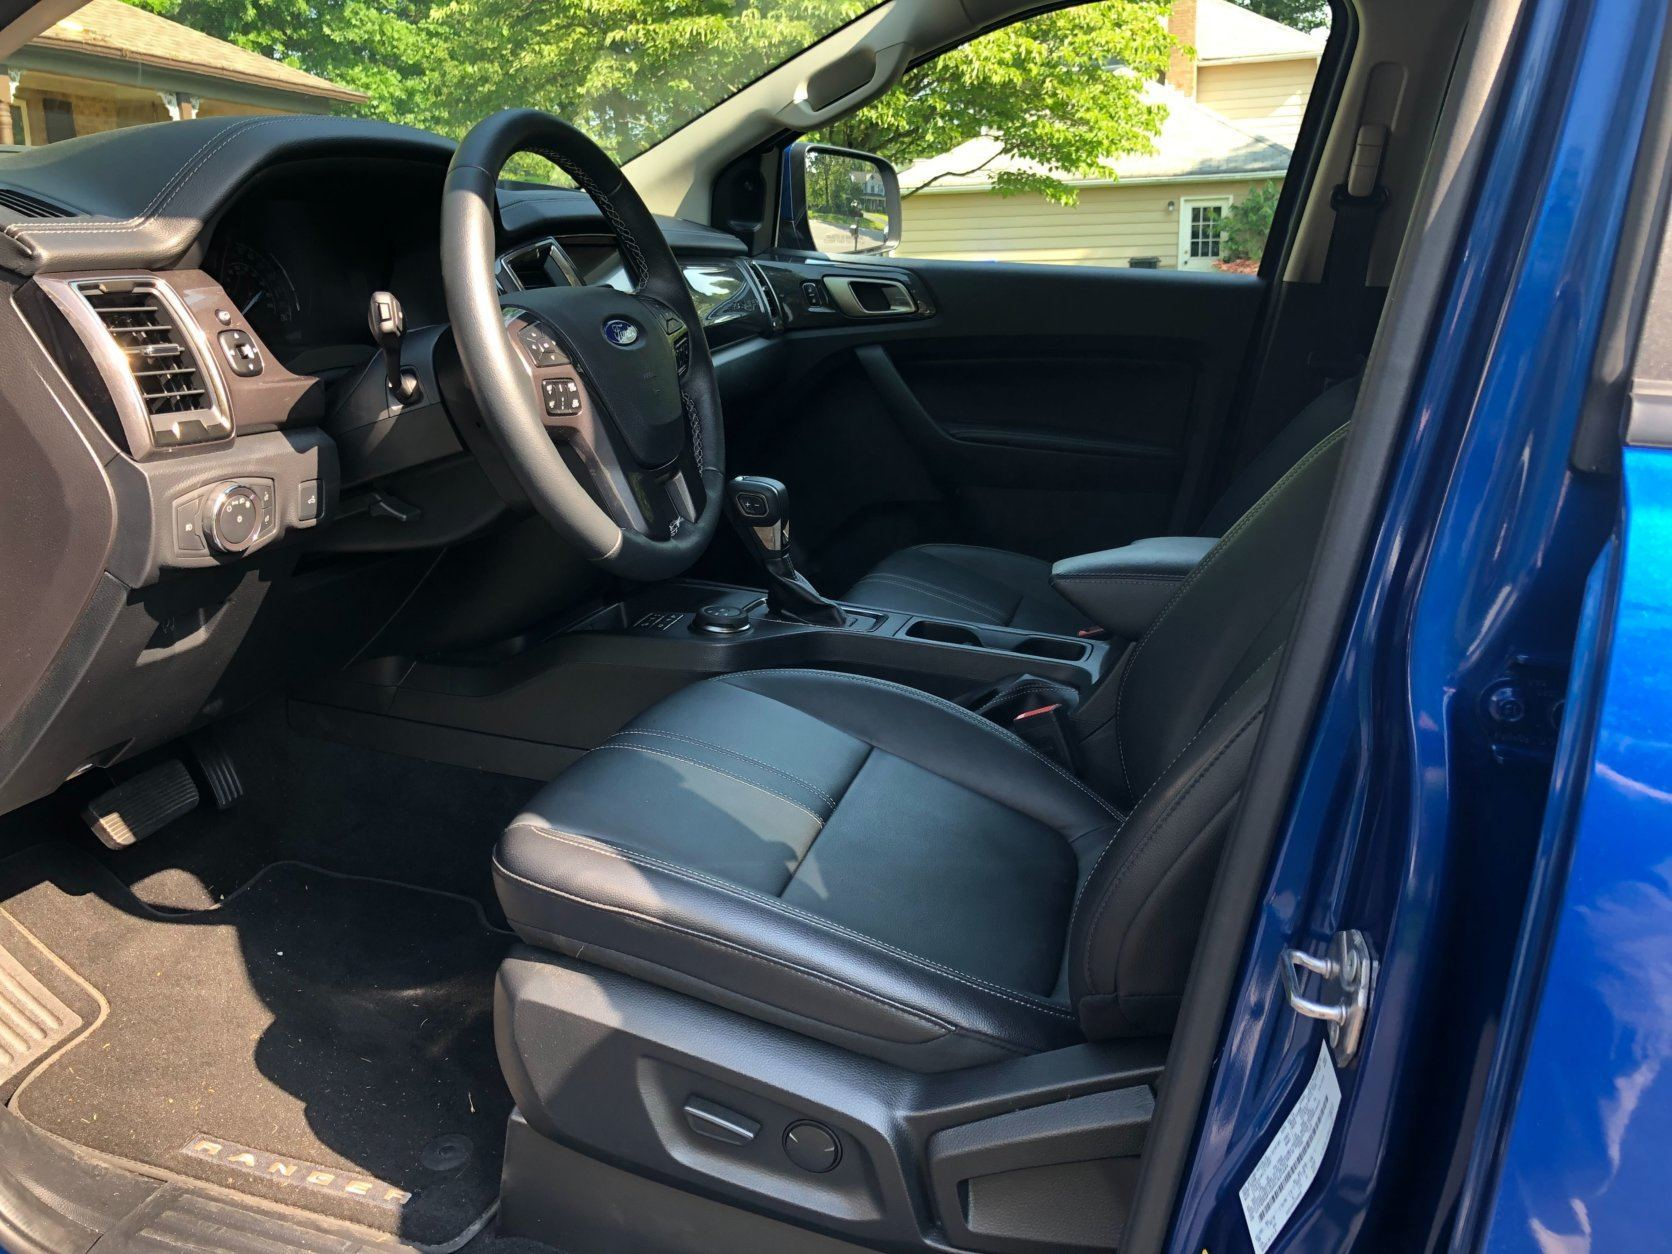 <p>The inside of the 2019 Ranger Lariat is a comfortable place. Heated leather power seats up front, leather steering wheel and console-mounted shifter have the look and feel buyers of a nearly $45,000 truck expect. There are still some hard plastics in the cabin, although a bit less than the competition. Controls are straight forward but some drivers may find some of the buttons a bit small and clustered a too low for their reach.</p>